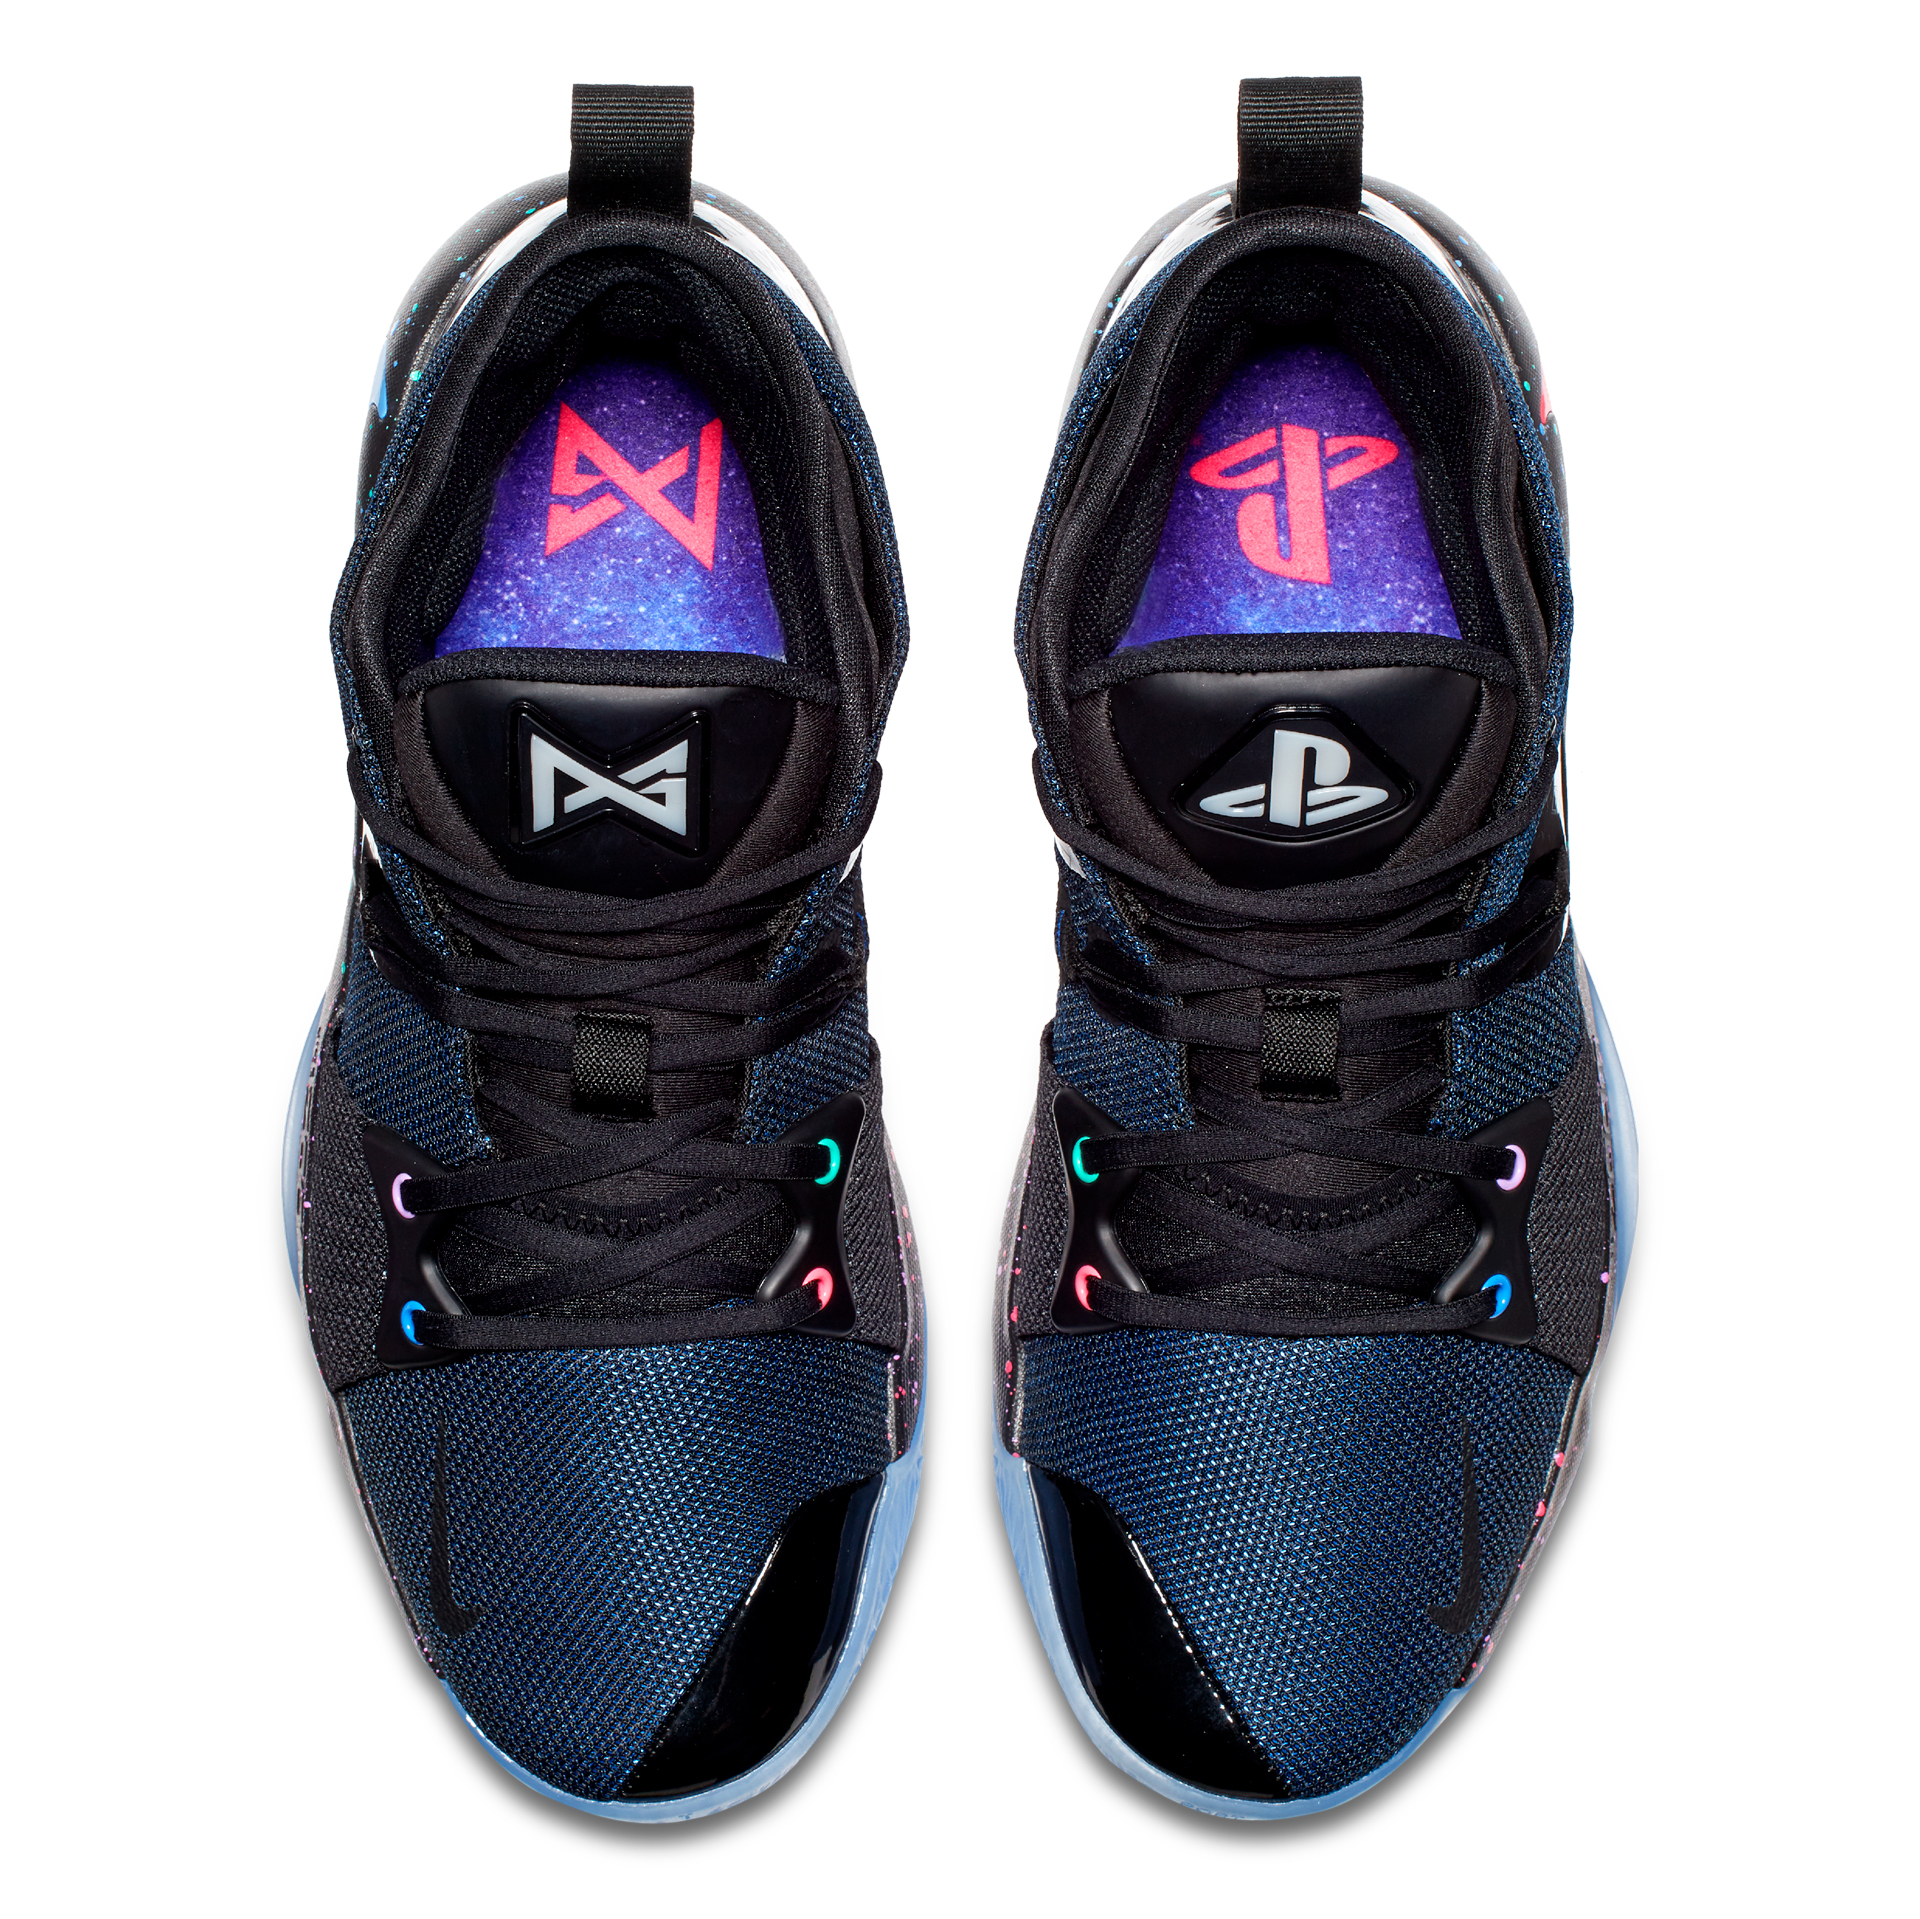 Limited Edition Mens Basketball Shoes